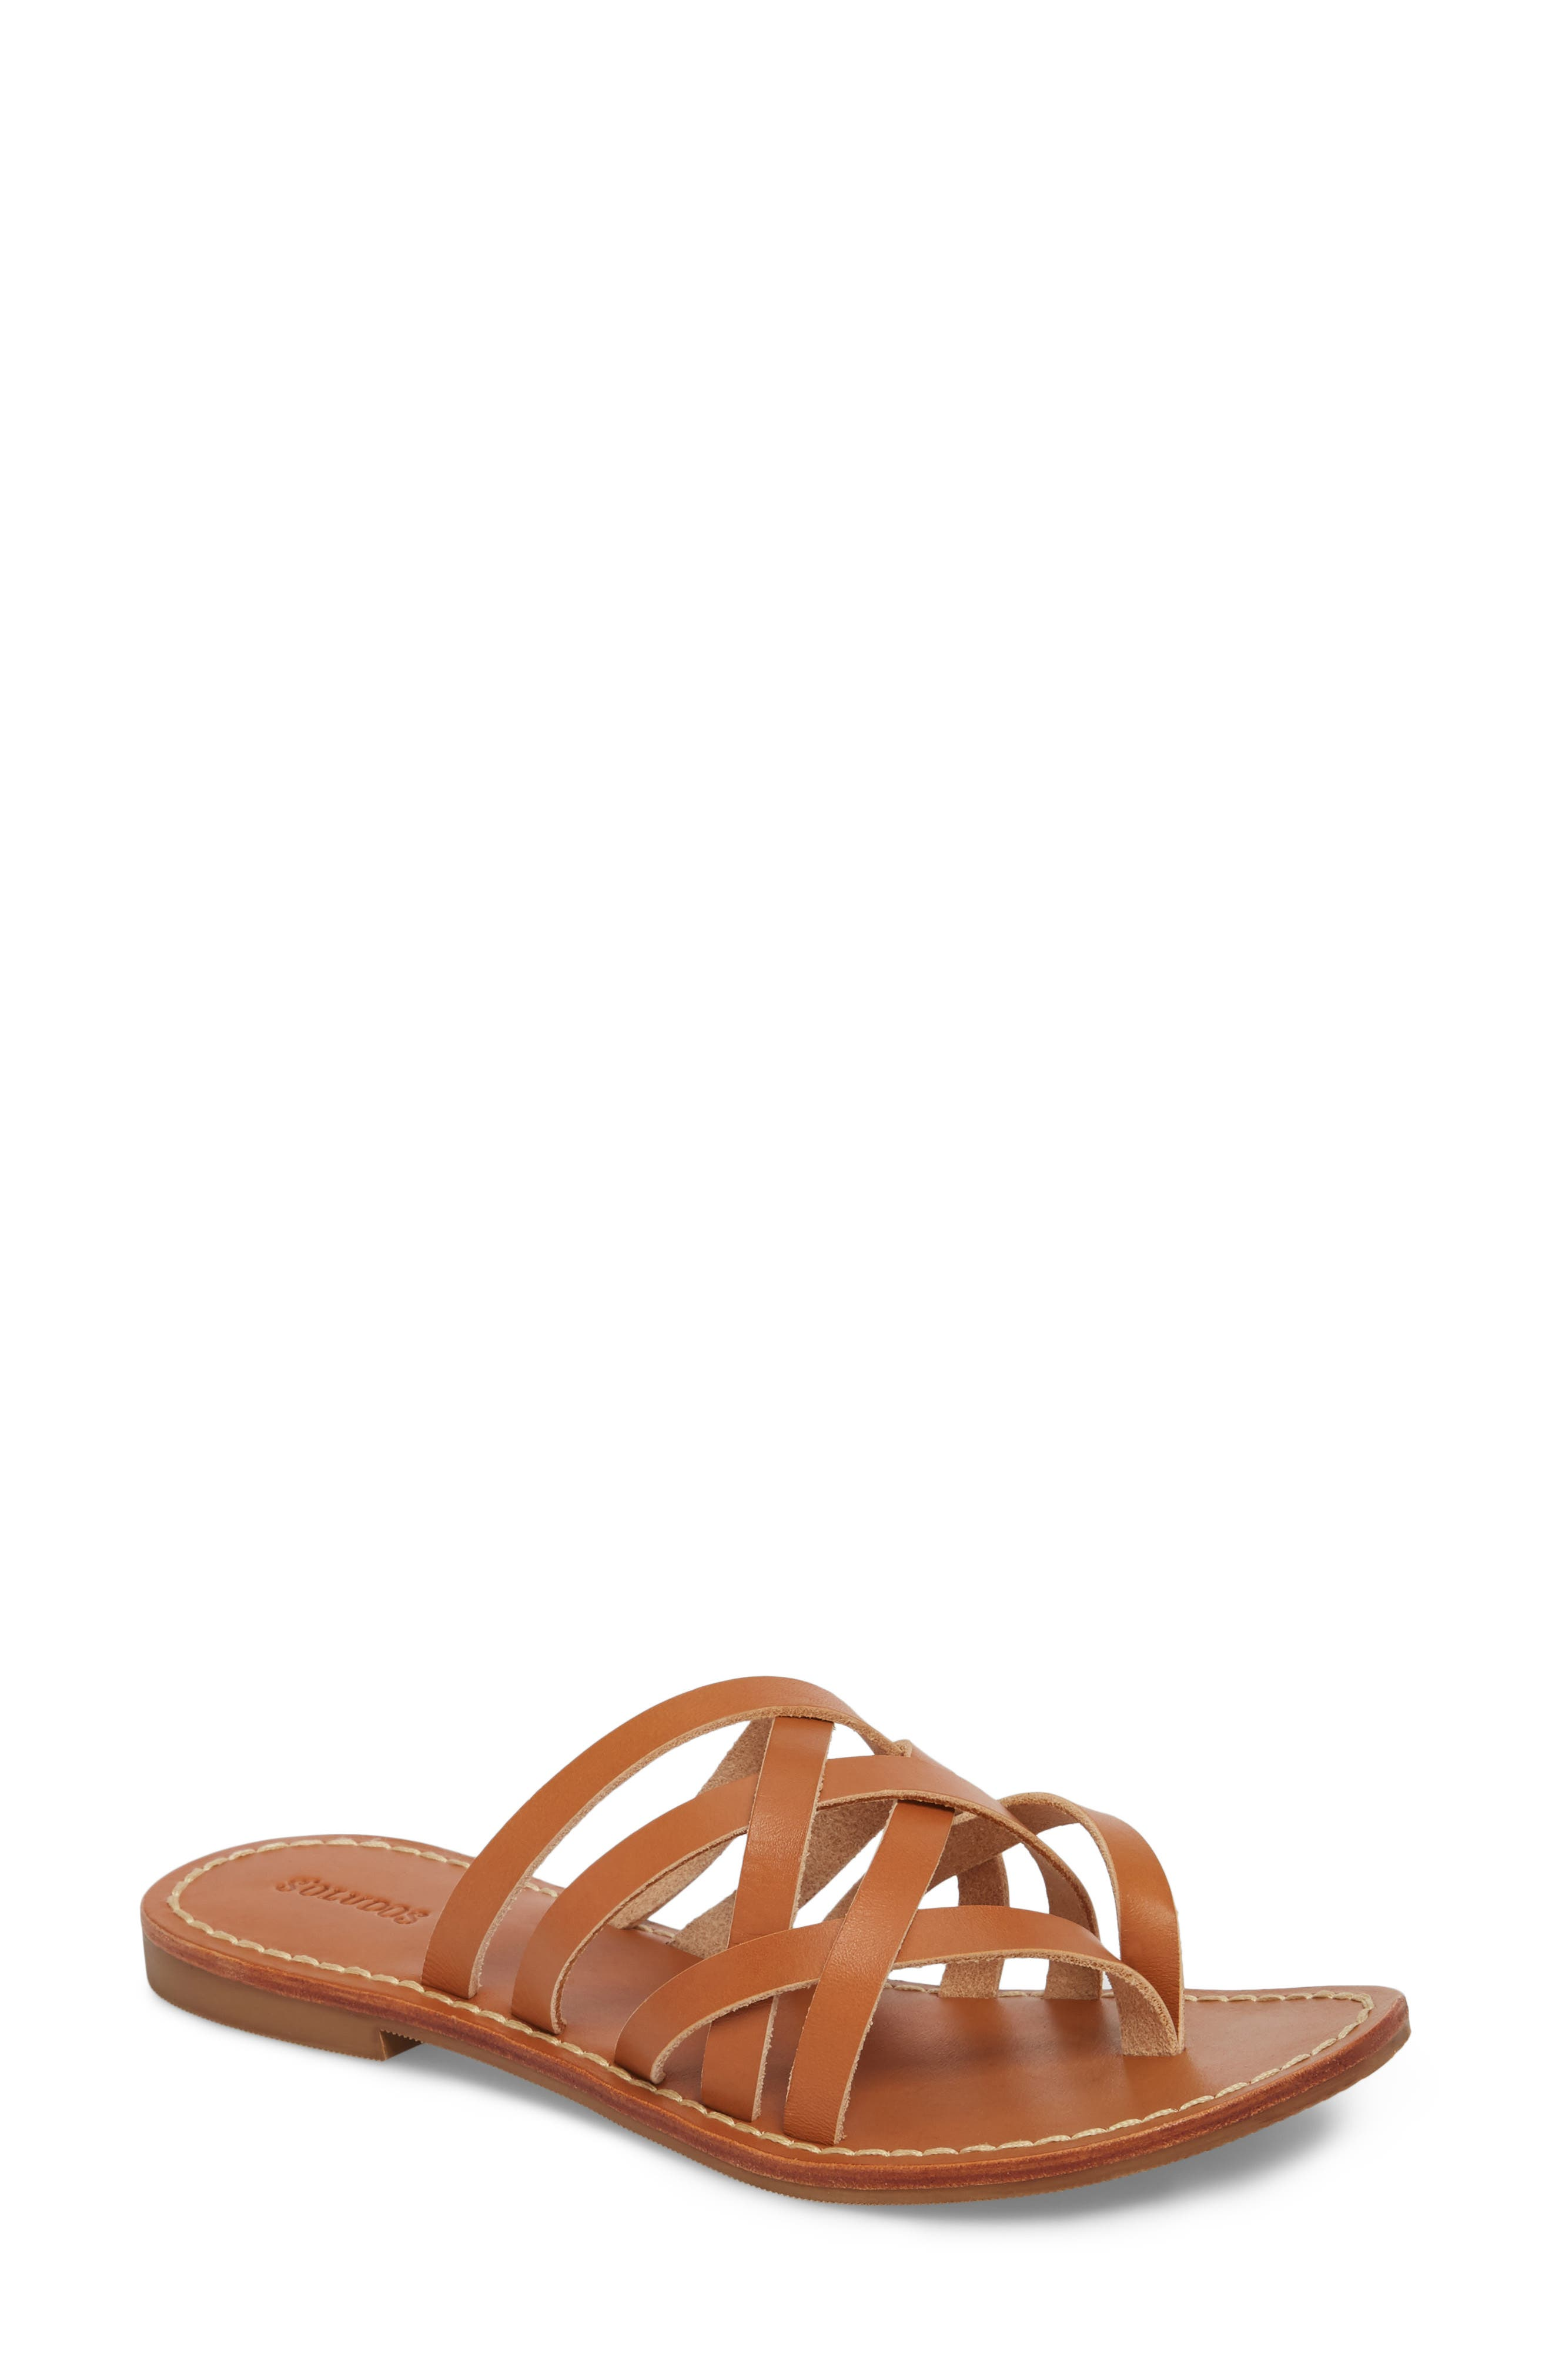 Strappy Sandal,                             Main thumbnail 1, color,                             Natural Leather